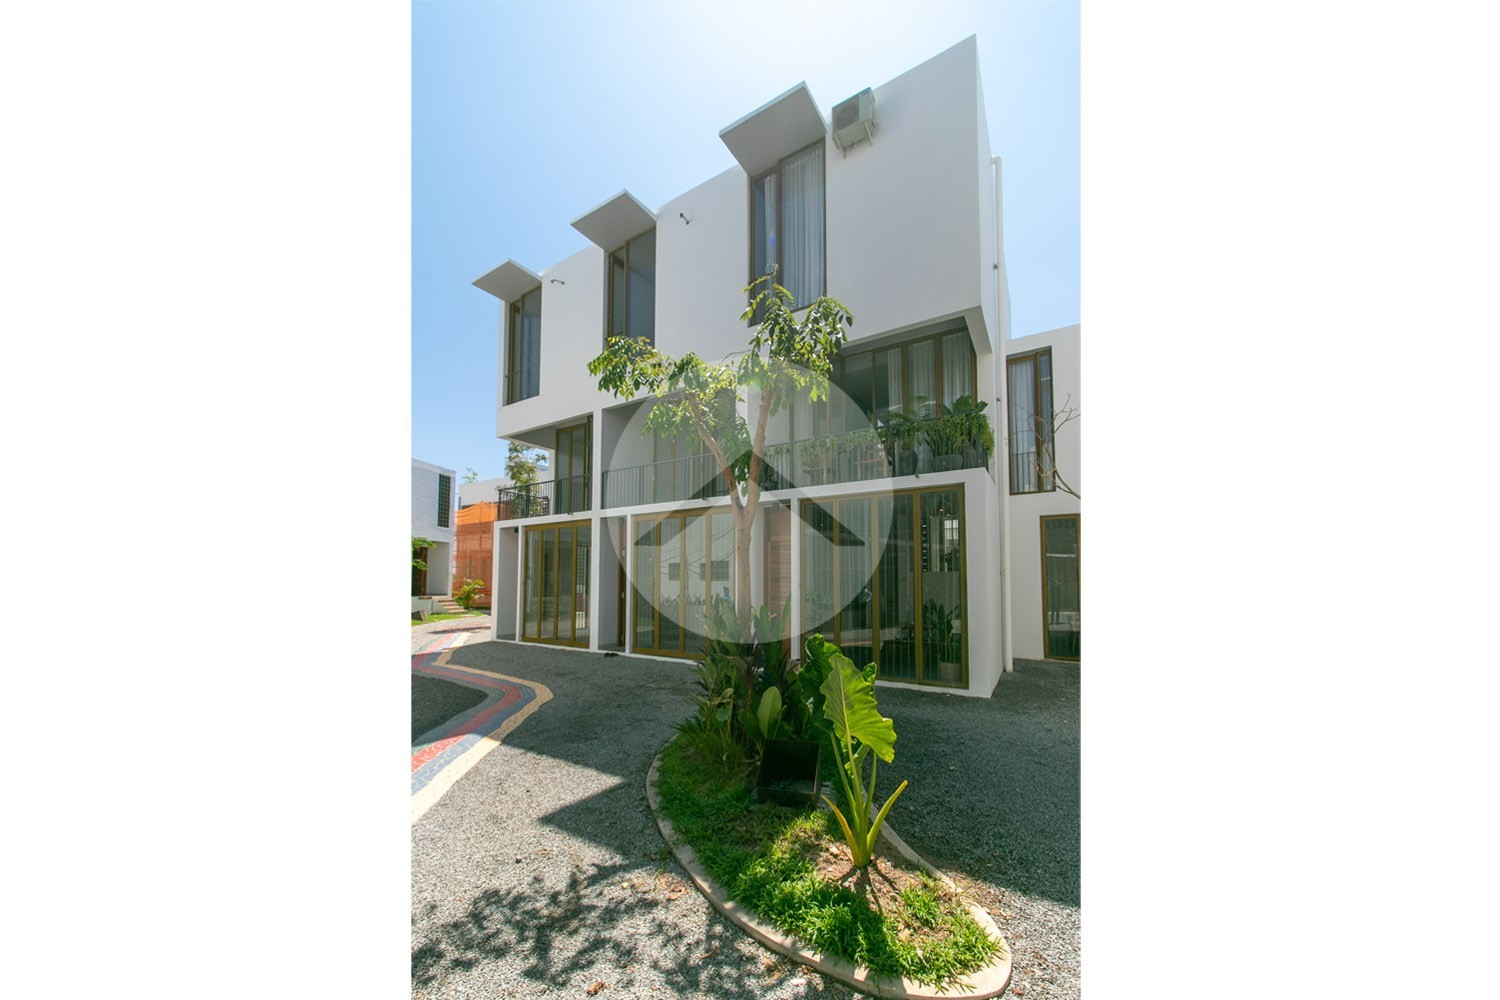 2 Bedroom Villa For Sale on Road 60, Siem Reap . Foreign ownership allowed